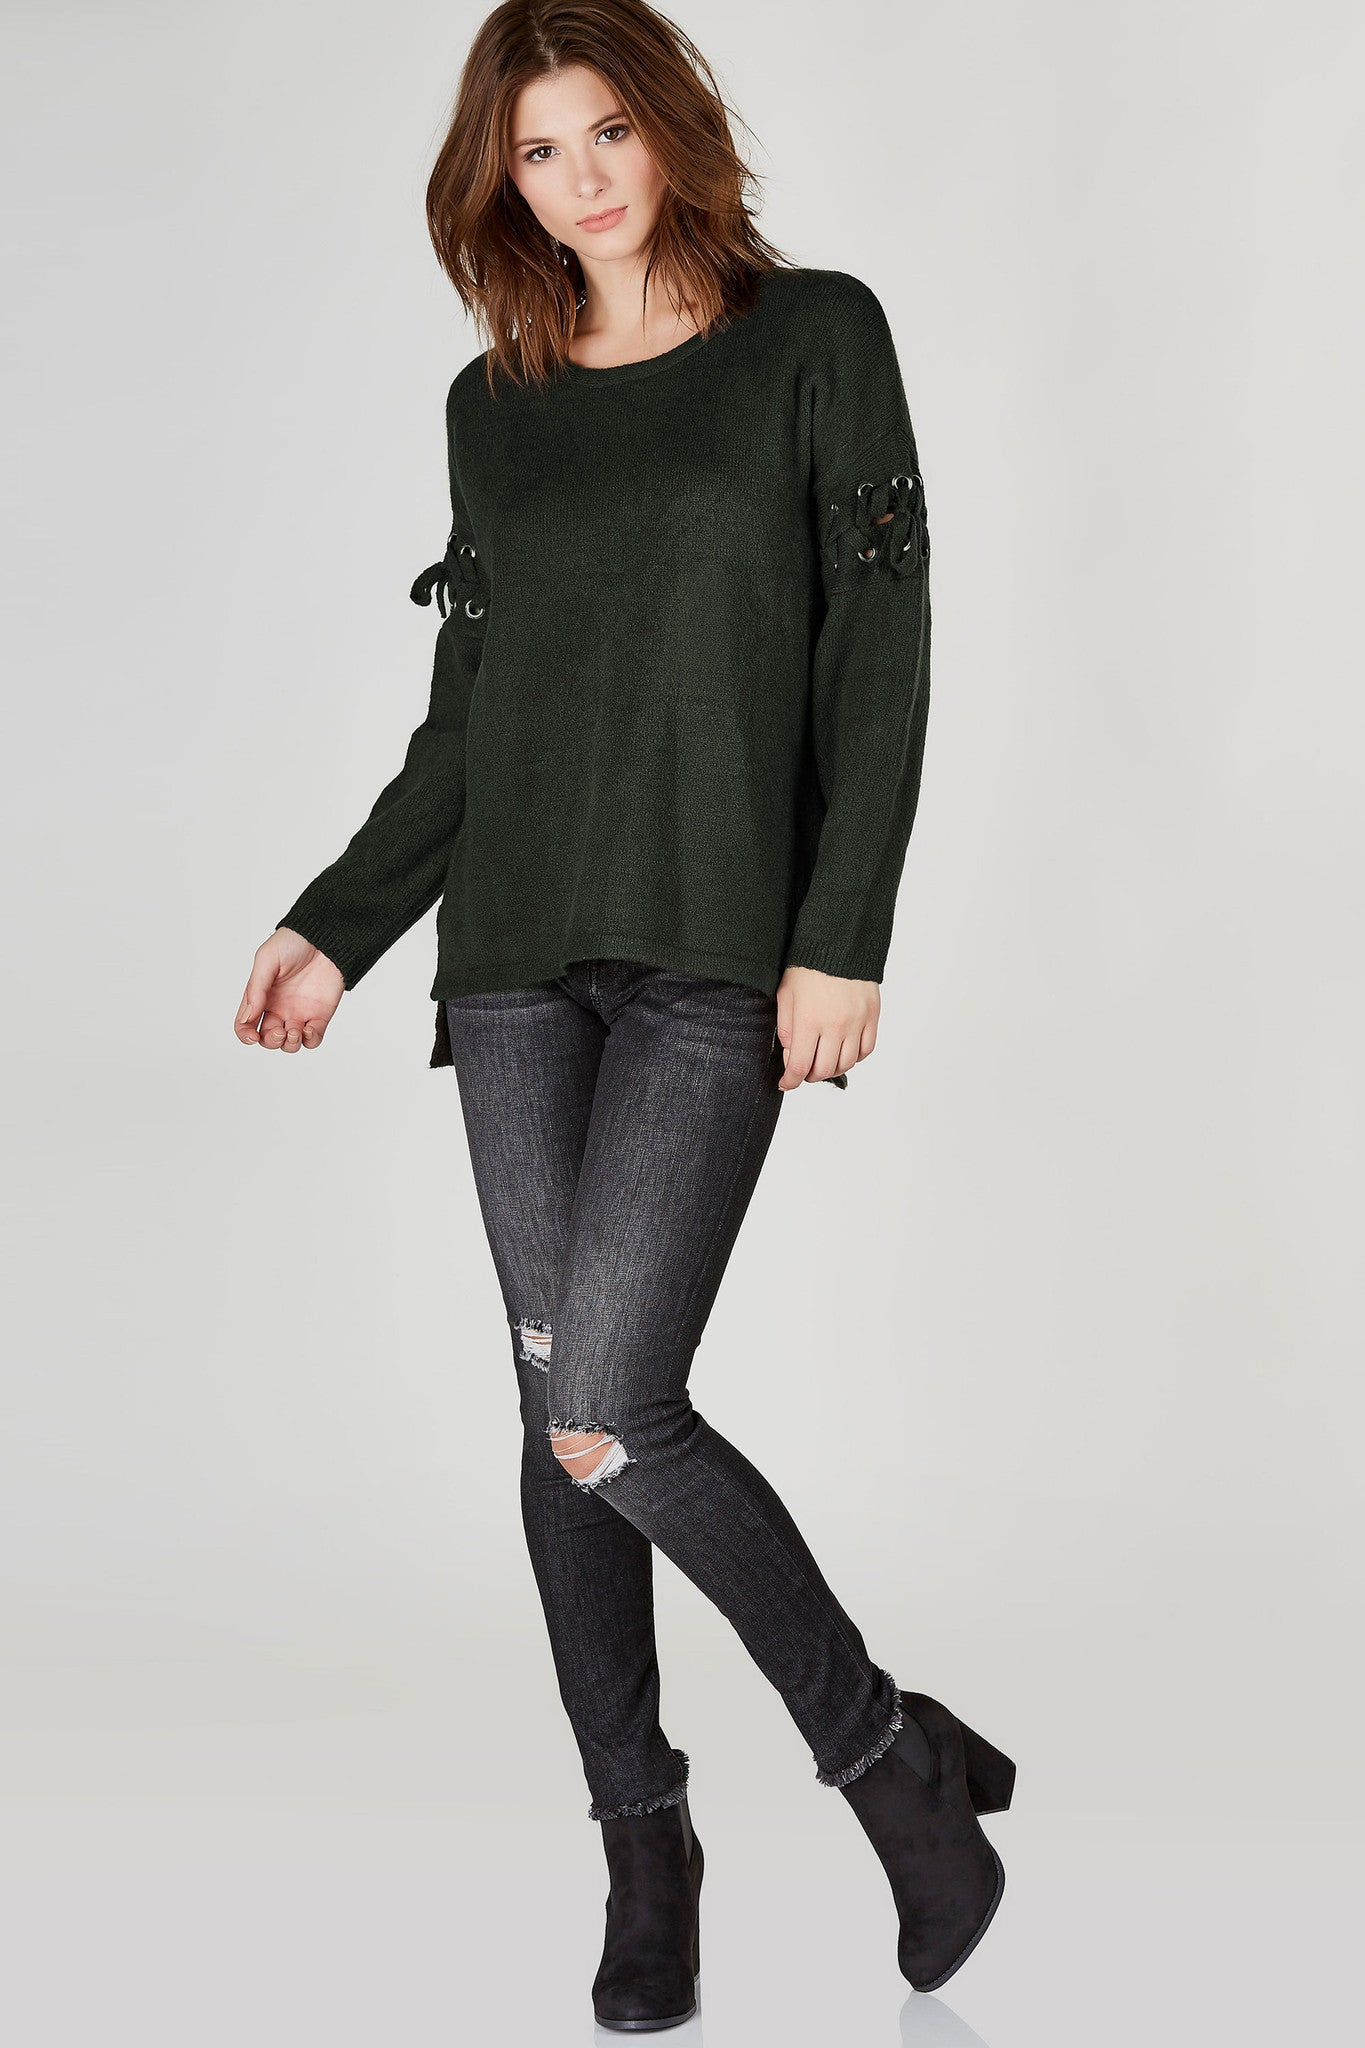 A stylish oversized sweater made of soft stretchy material. Classic crew neck with slightly dropped shoulders for a trendy touch. Features dope lace up detailing on each sleeves with a clean straight hi-low hem.